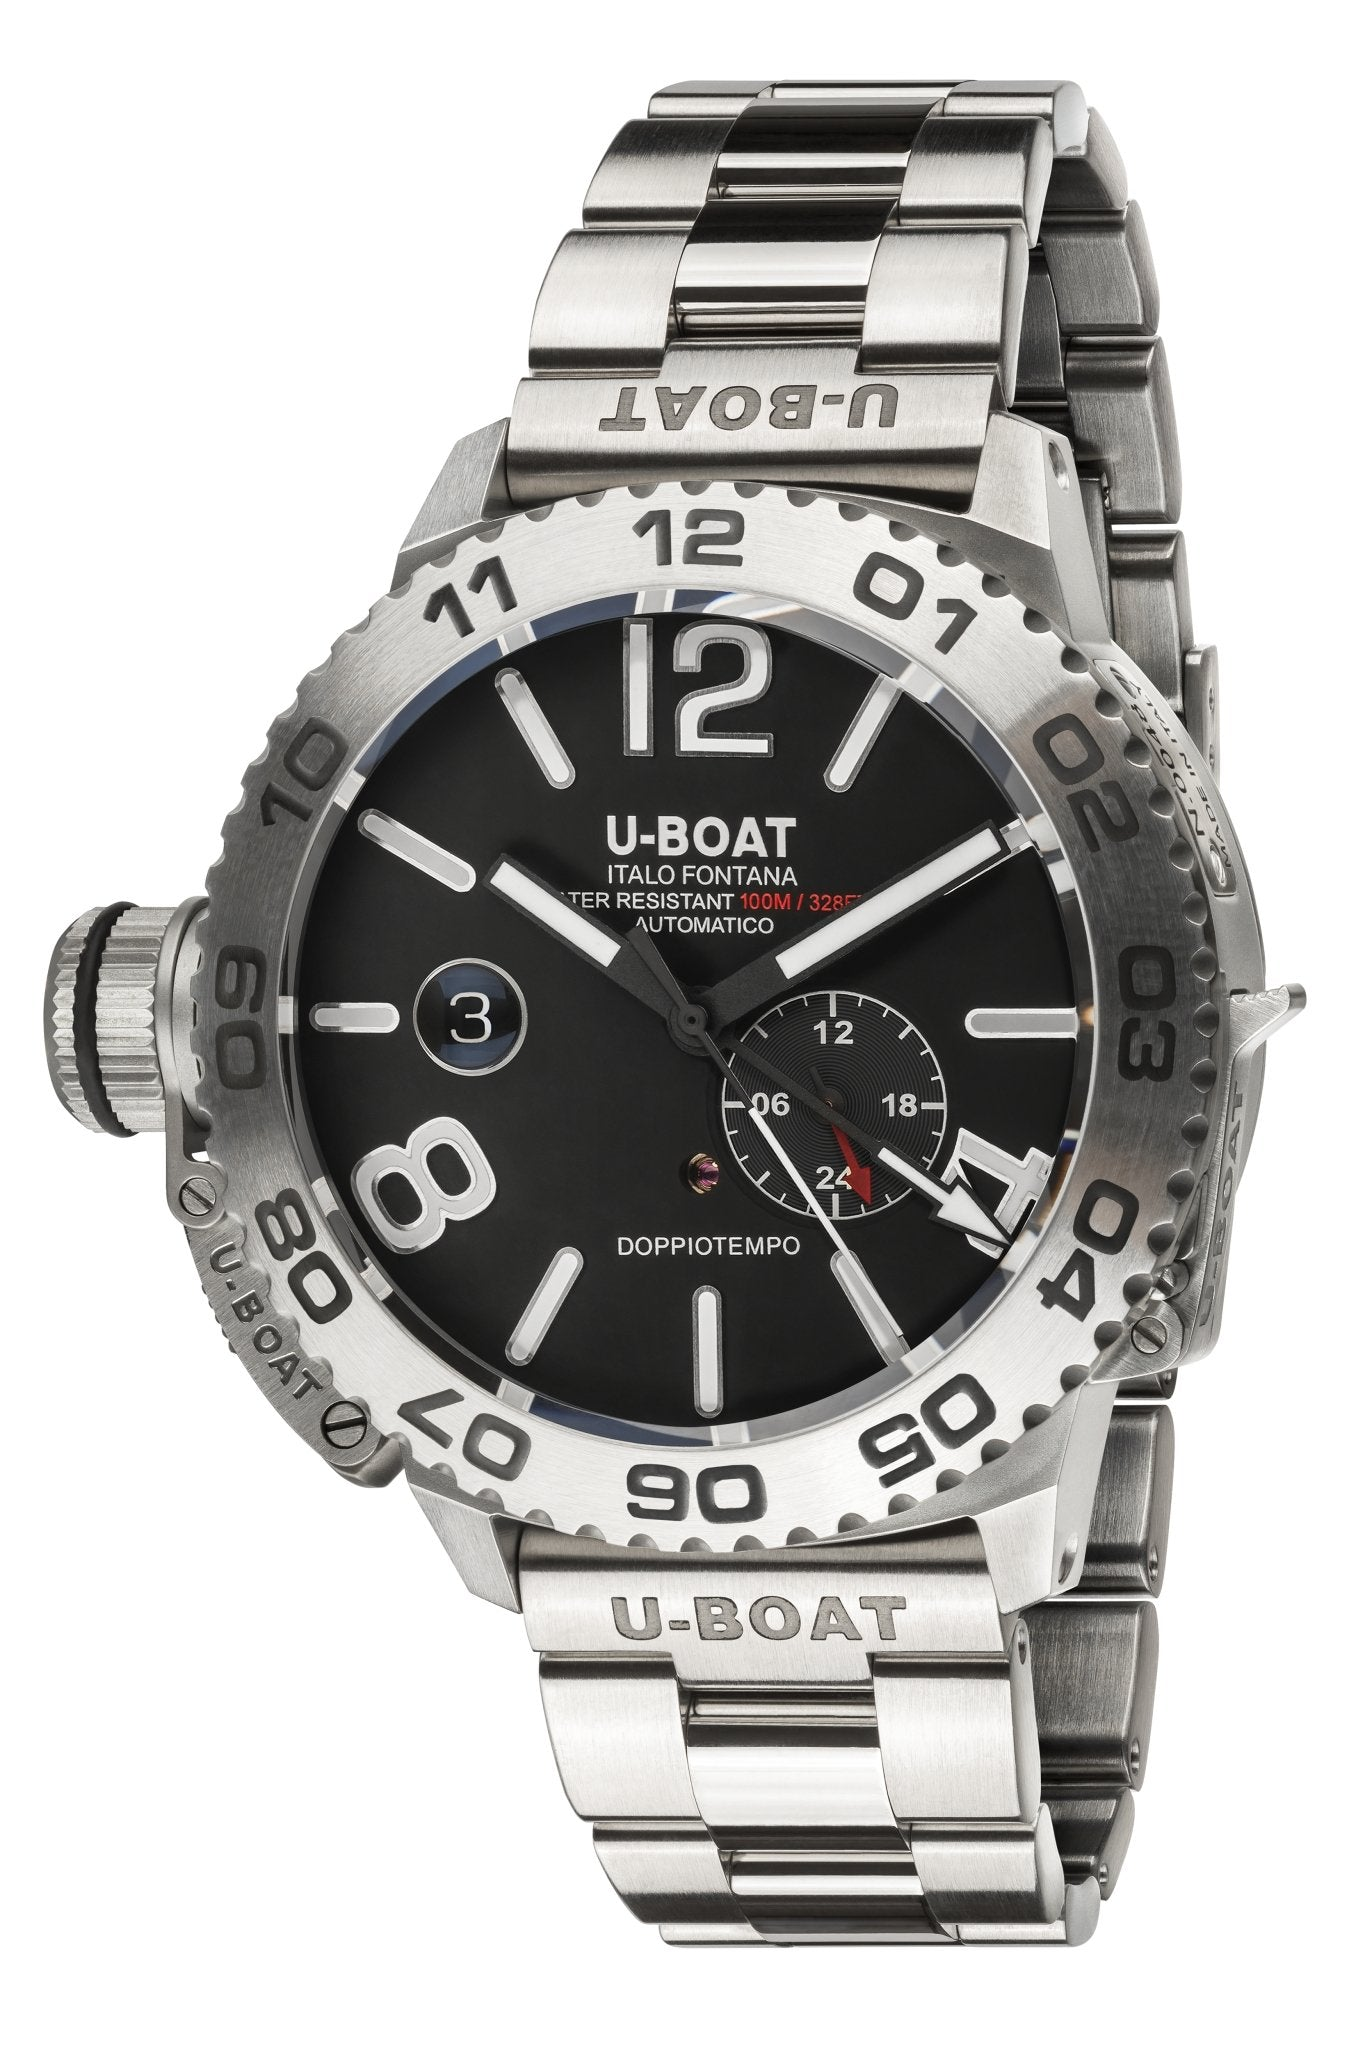 U-Boat Doppiotempo Date Stainless Steel - Watches & Crystals